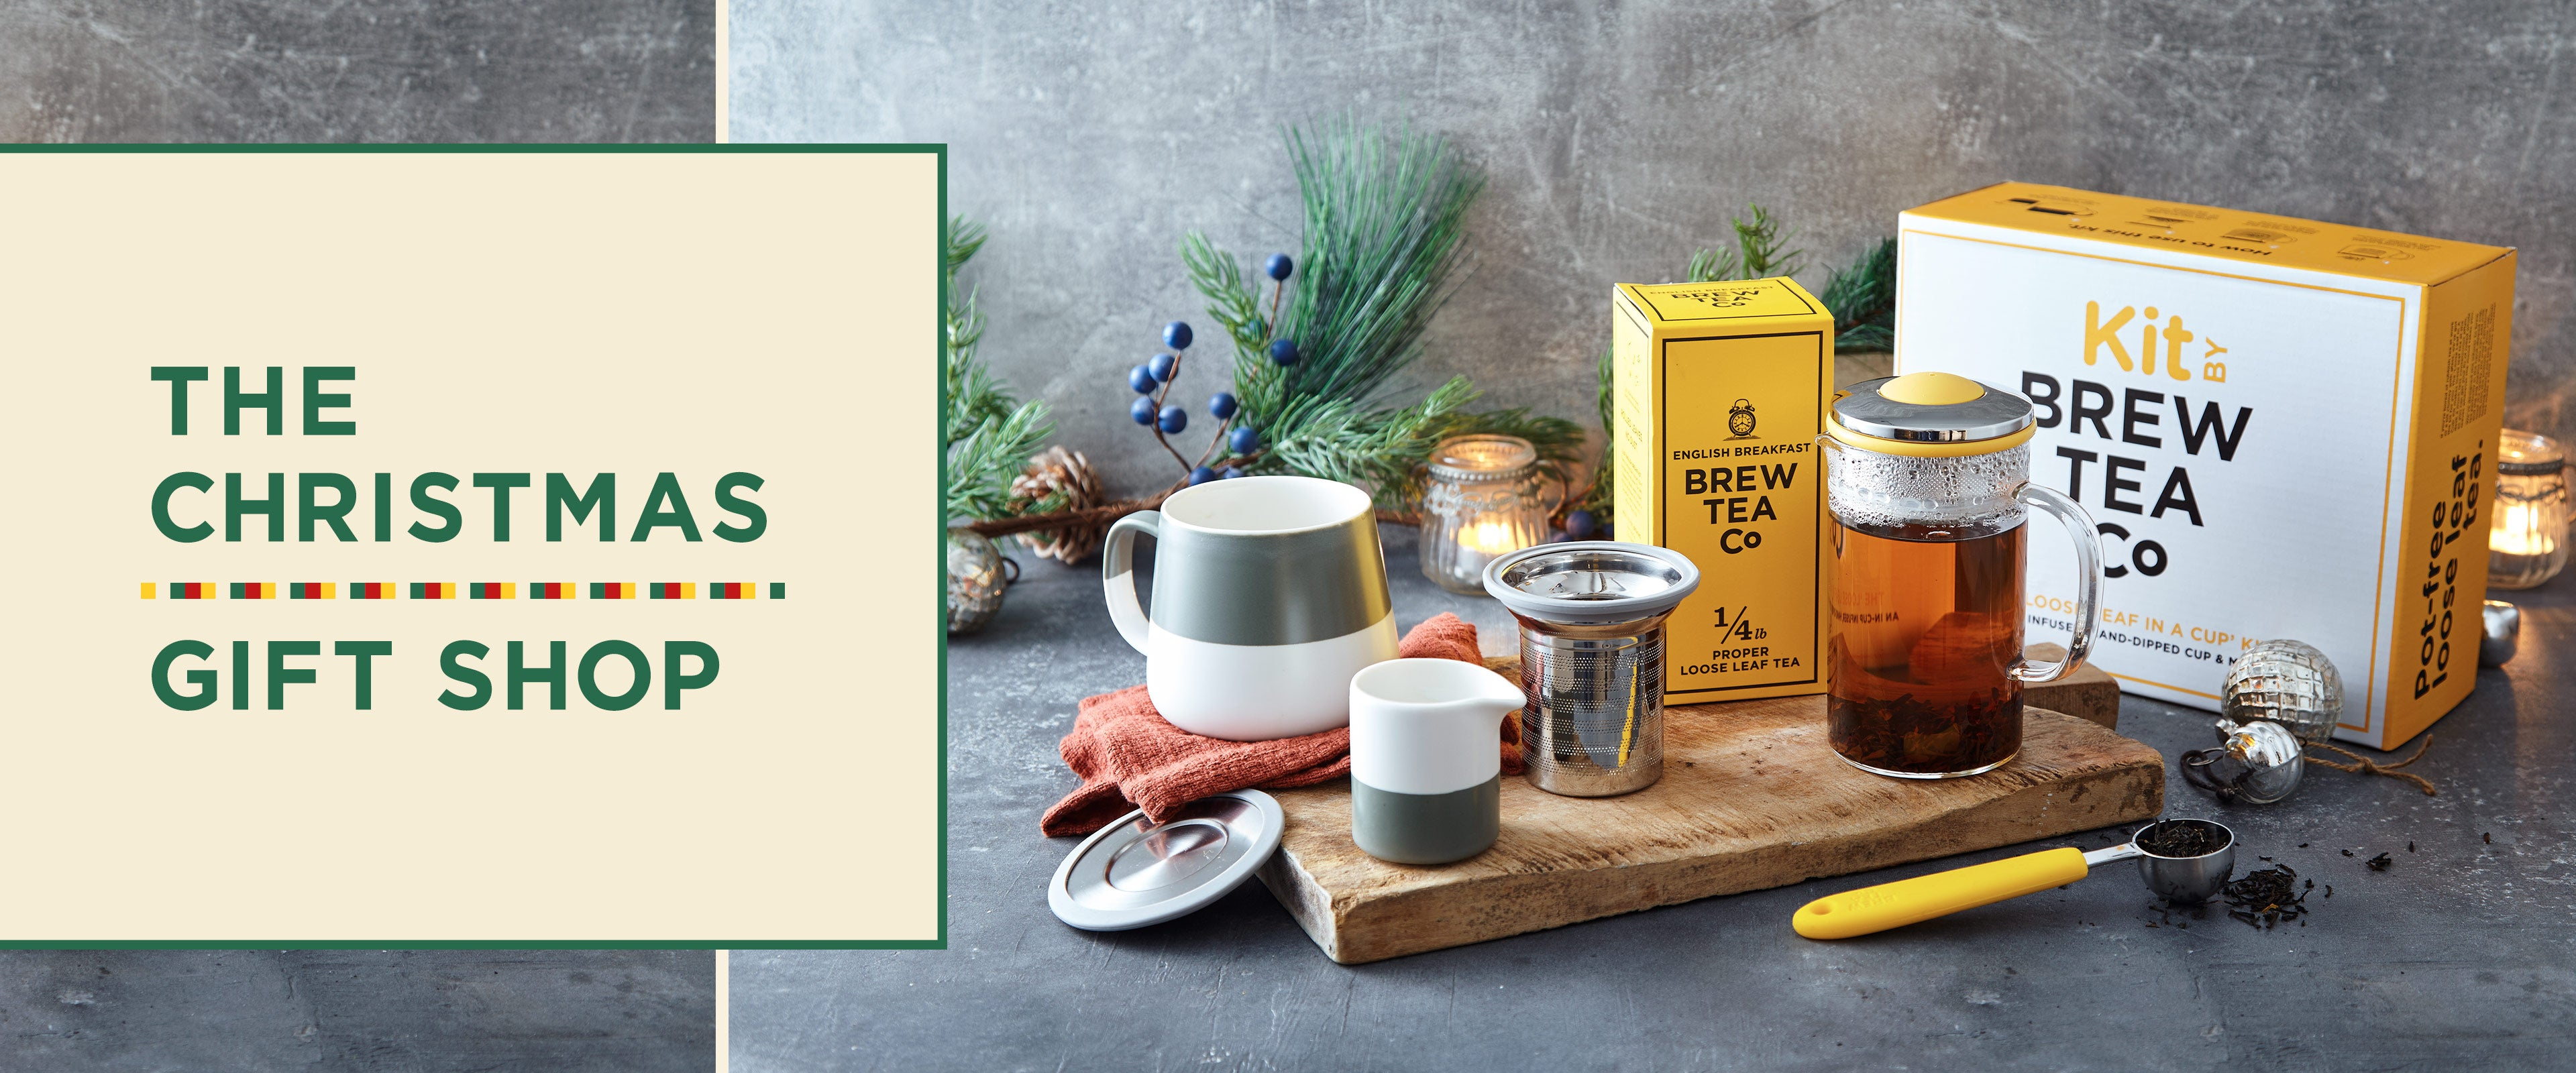 Our Christmas Gift Shop collection - a box of English Breakfast loose leaf tea, a tea pot, tea kit, tea equipment, tea infuser, christmas gifts.